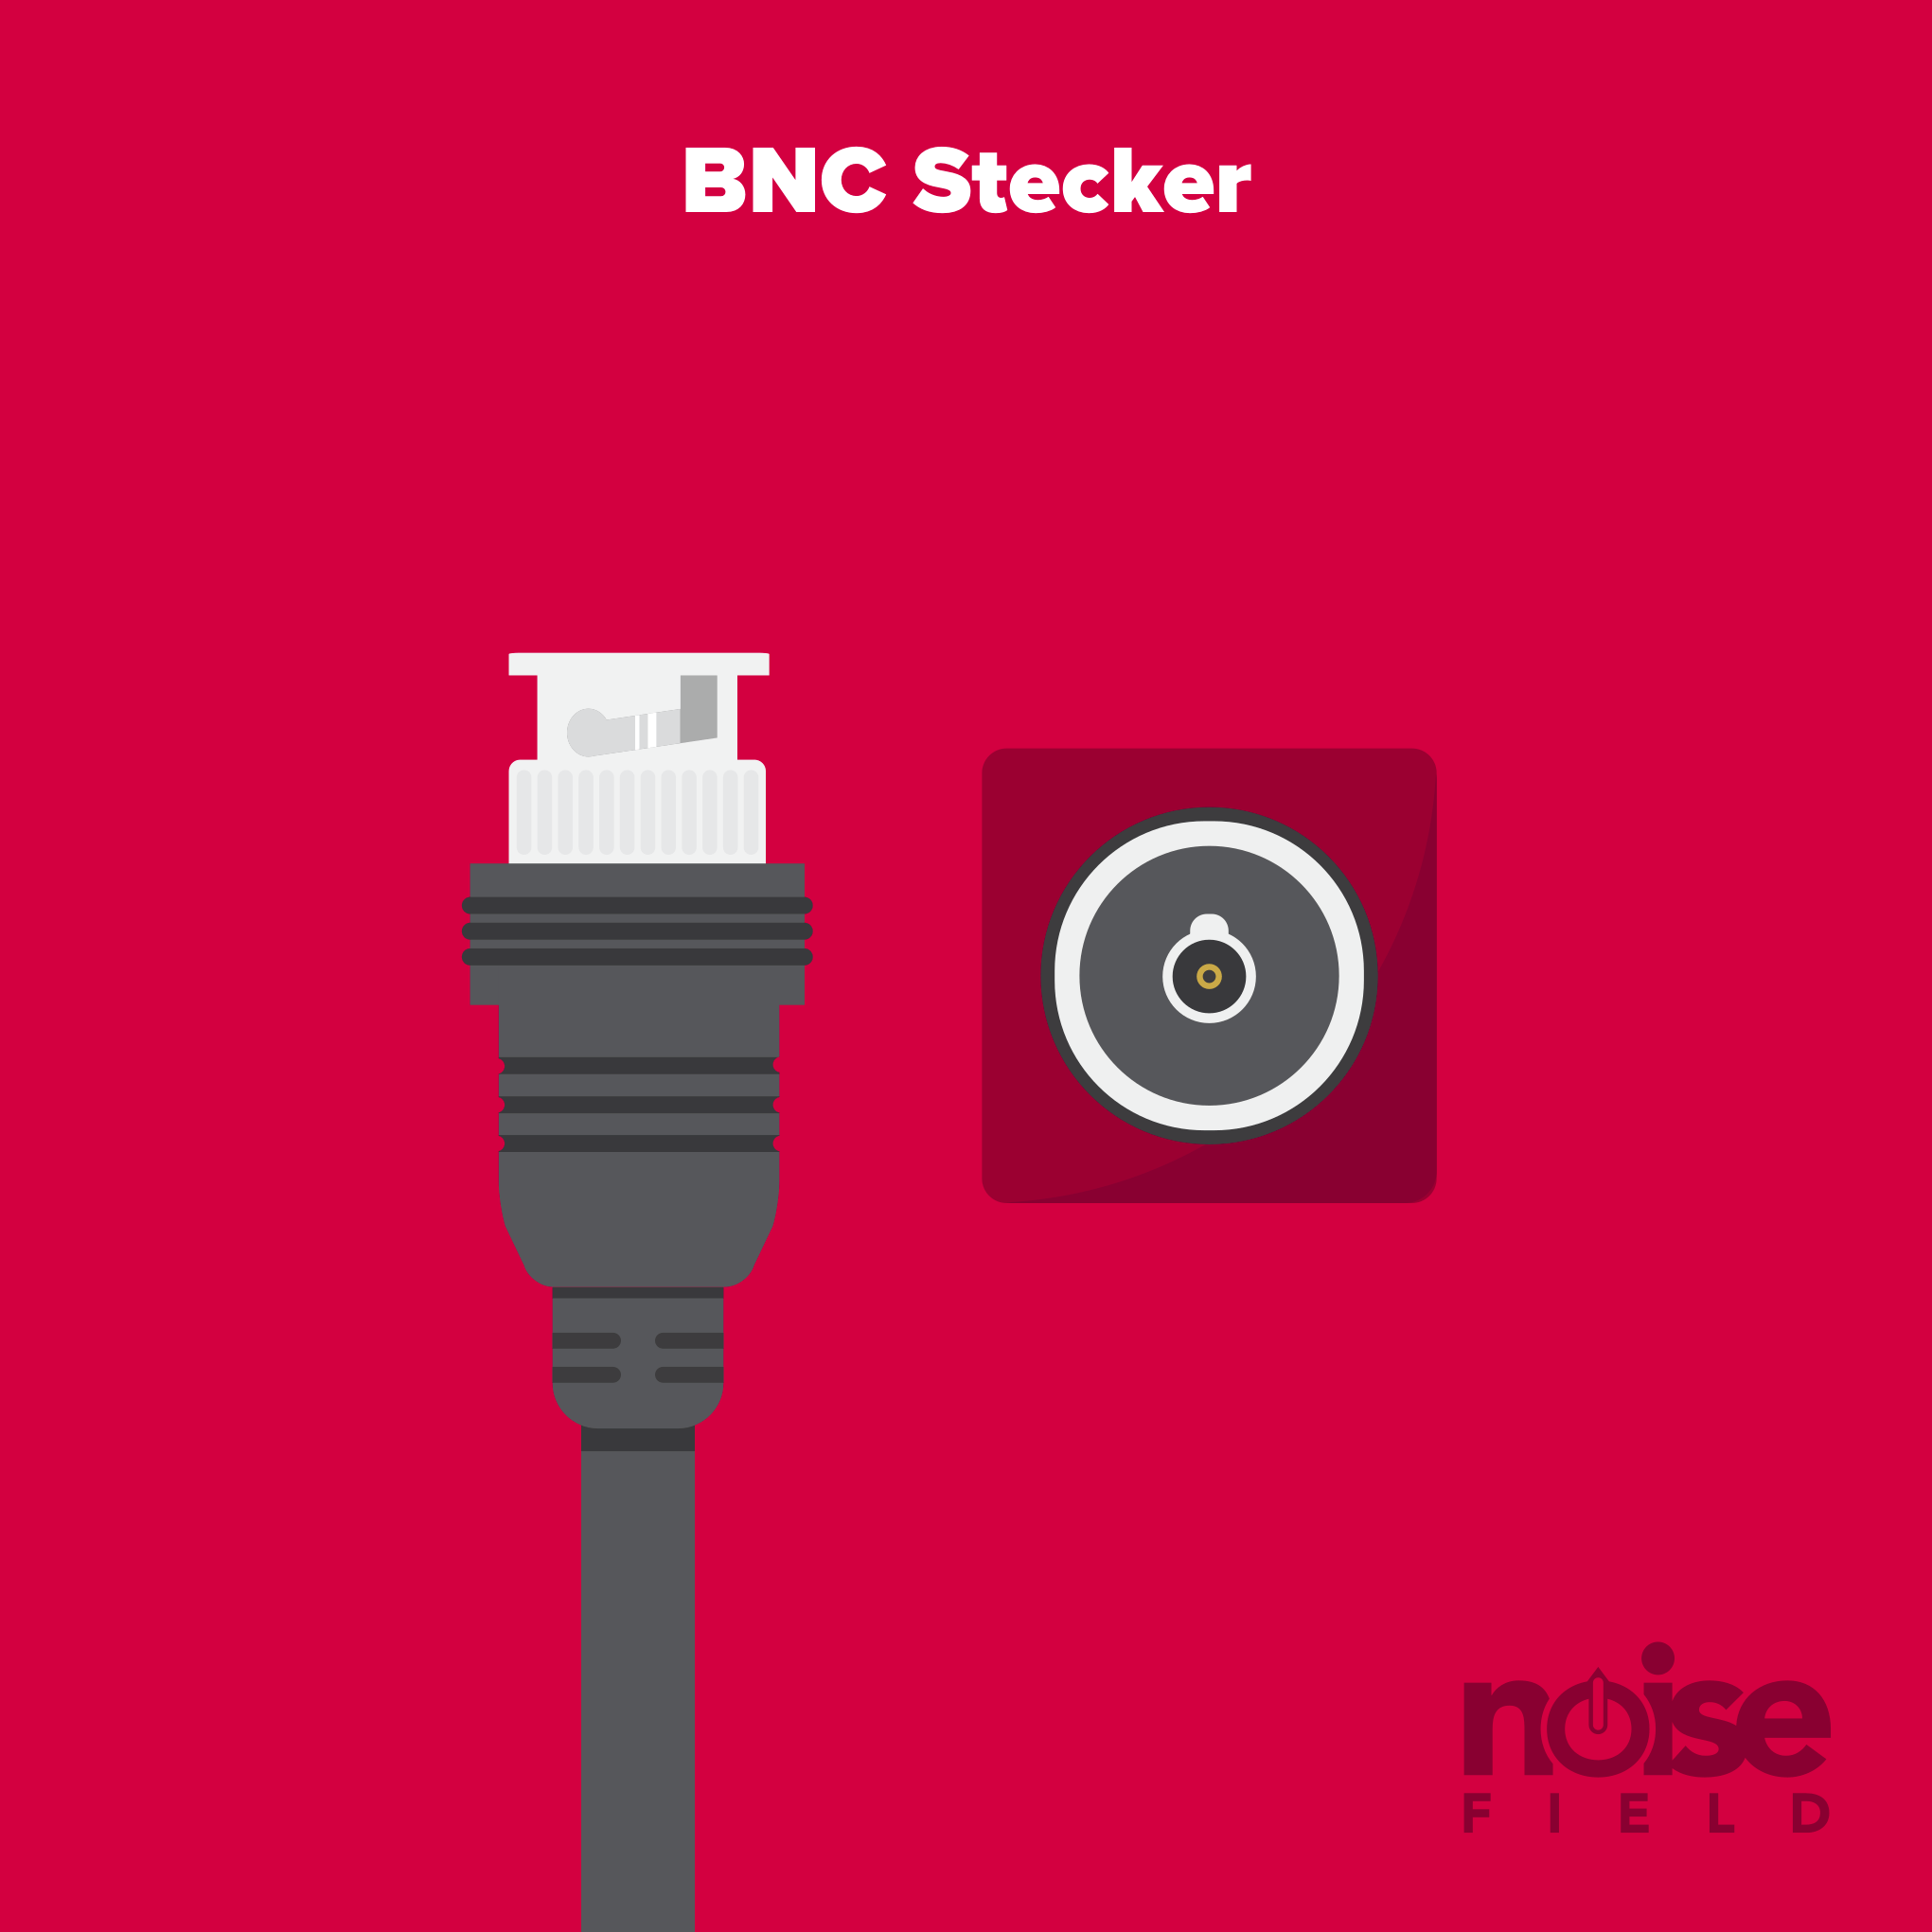 BNC Worldclock Stecker Buchse Illustration Vector Audio Interface